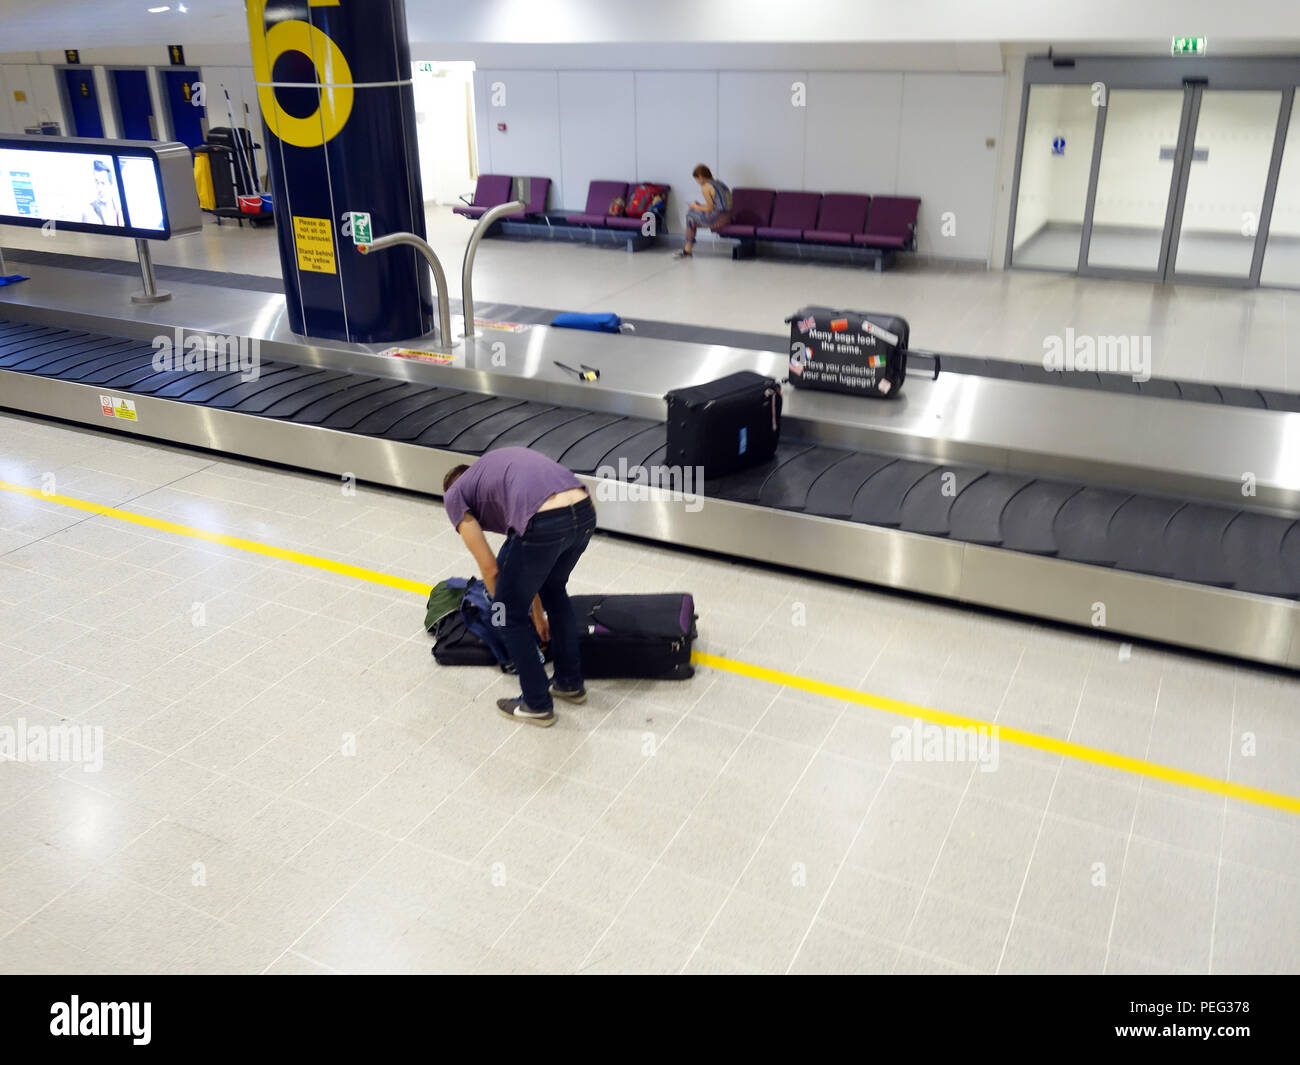 Male traveller waiting at collection conveyor belt number 6 in Terminal three at Manchester International Airport Arrivals Hall - Stock Image